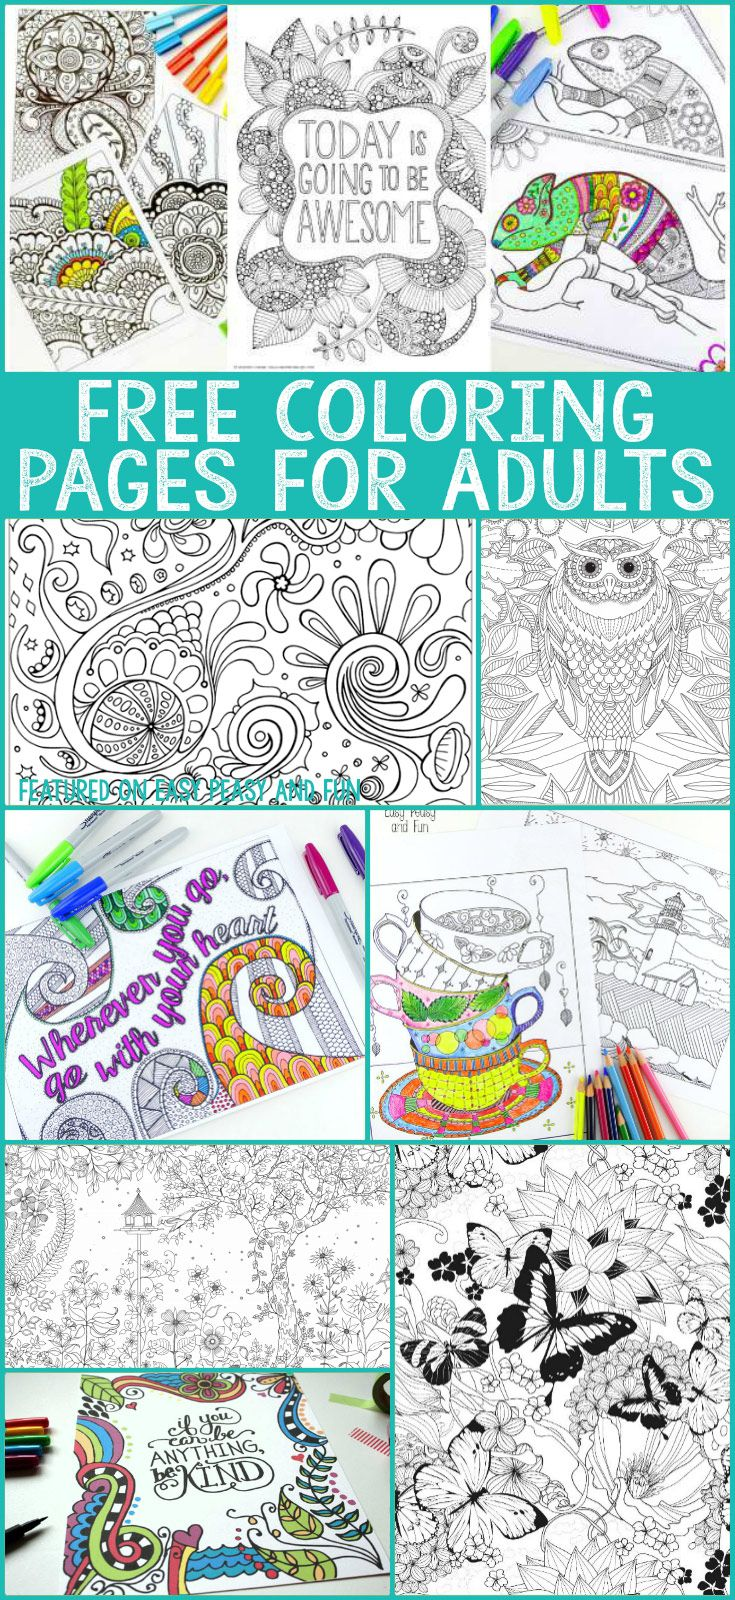 A whole bunch of gorgeous and free colouring pages for adults! As grown ups should have some colouring fun too°°